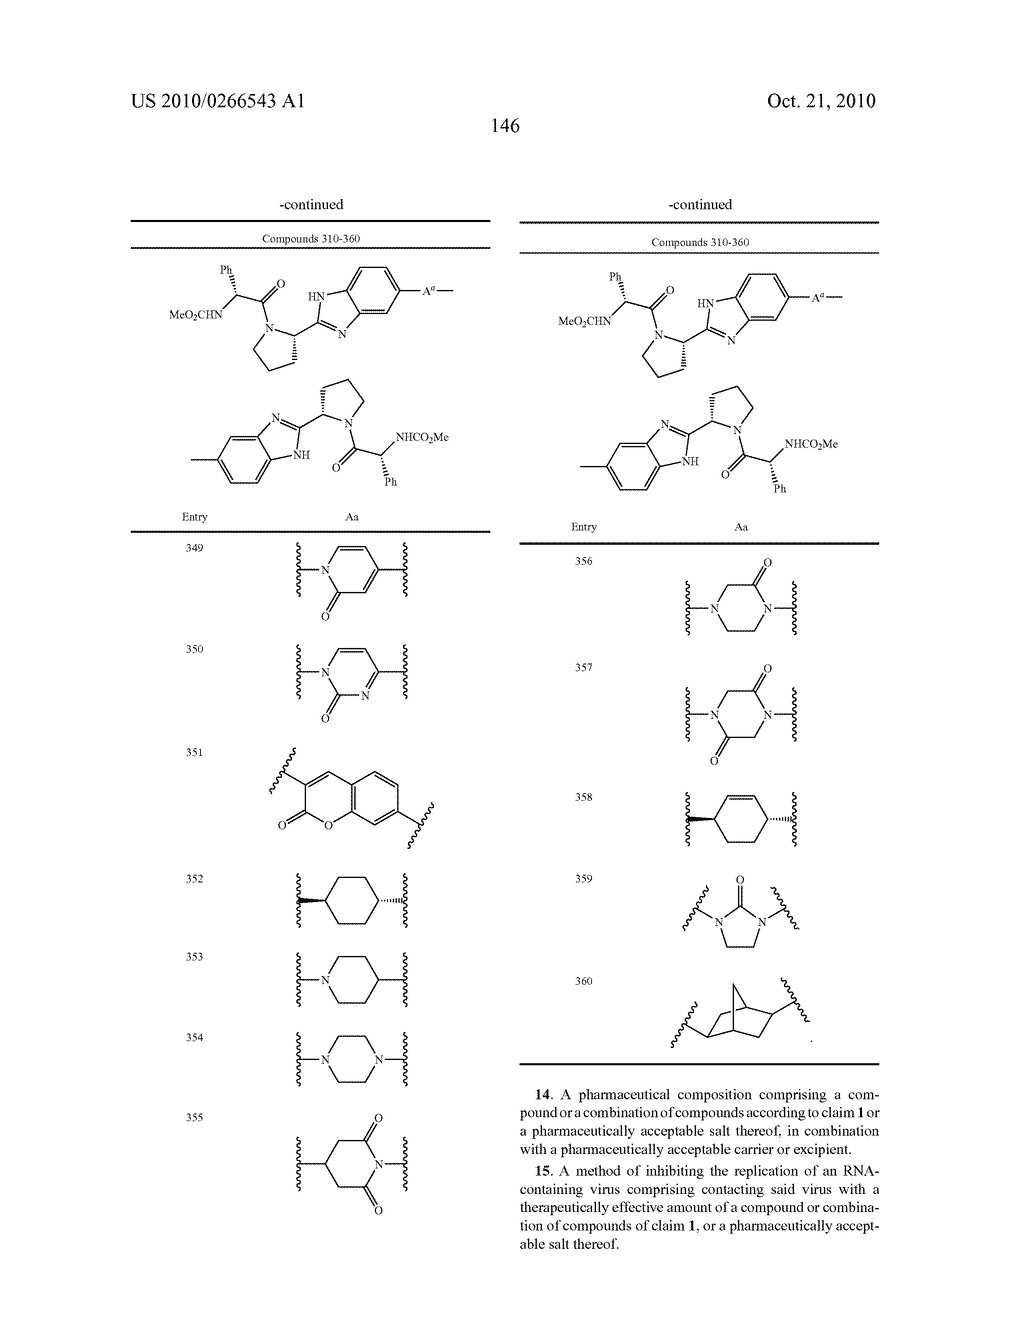 LINKED DIBENZIMIDAZOLE ANTIVIRALS - diagram, schematic, and image 149